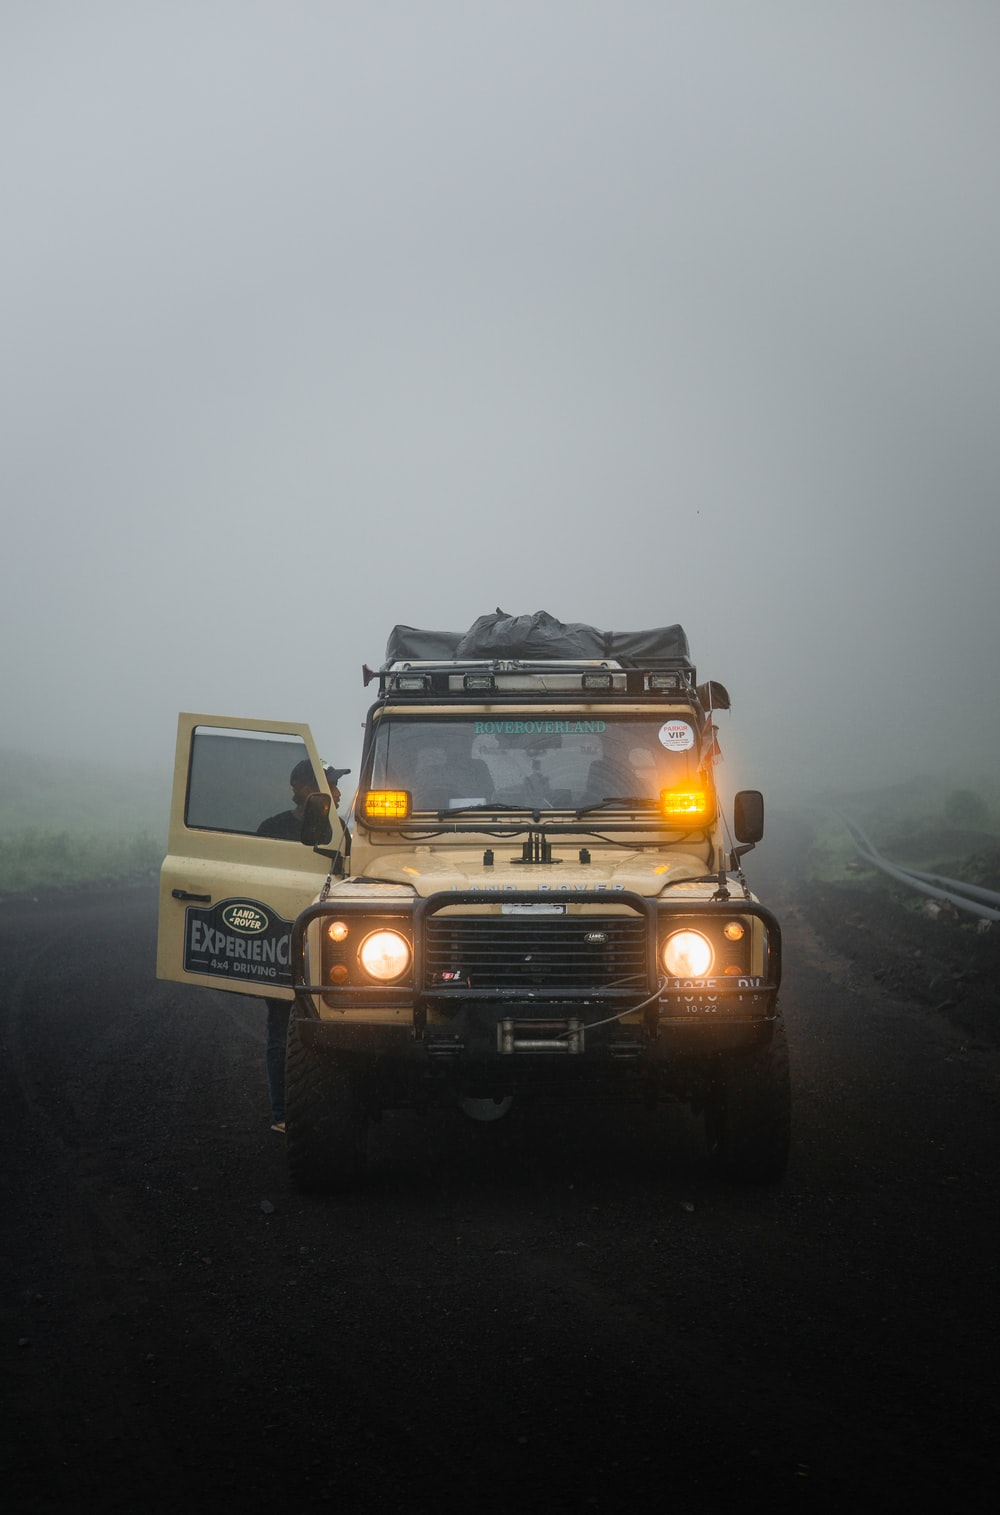 white and black jeep wrangler on road